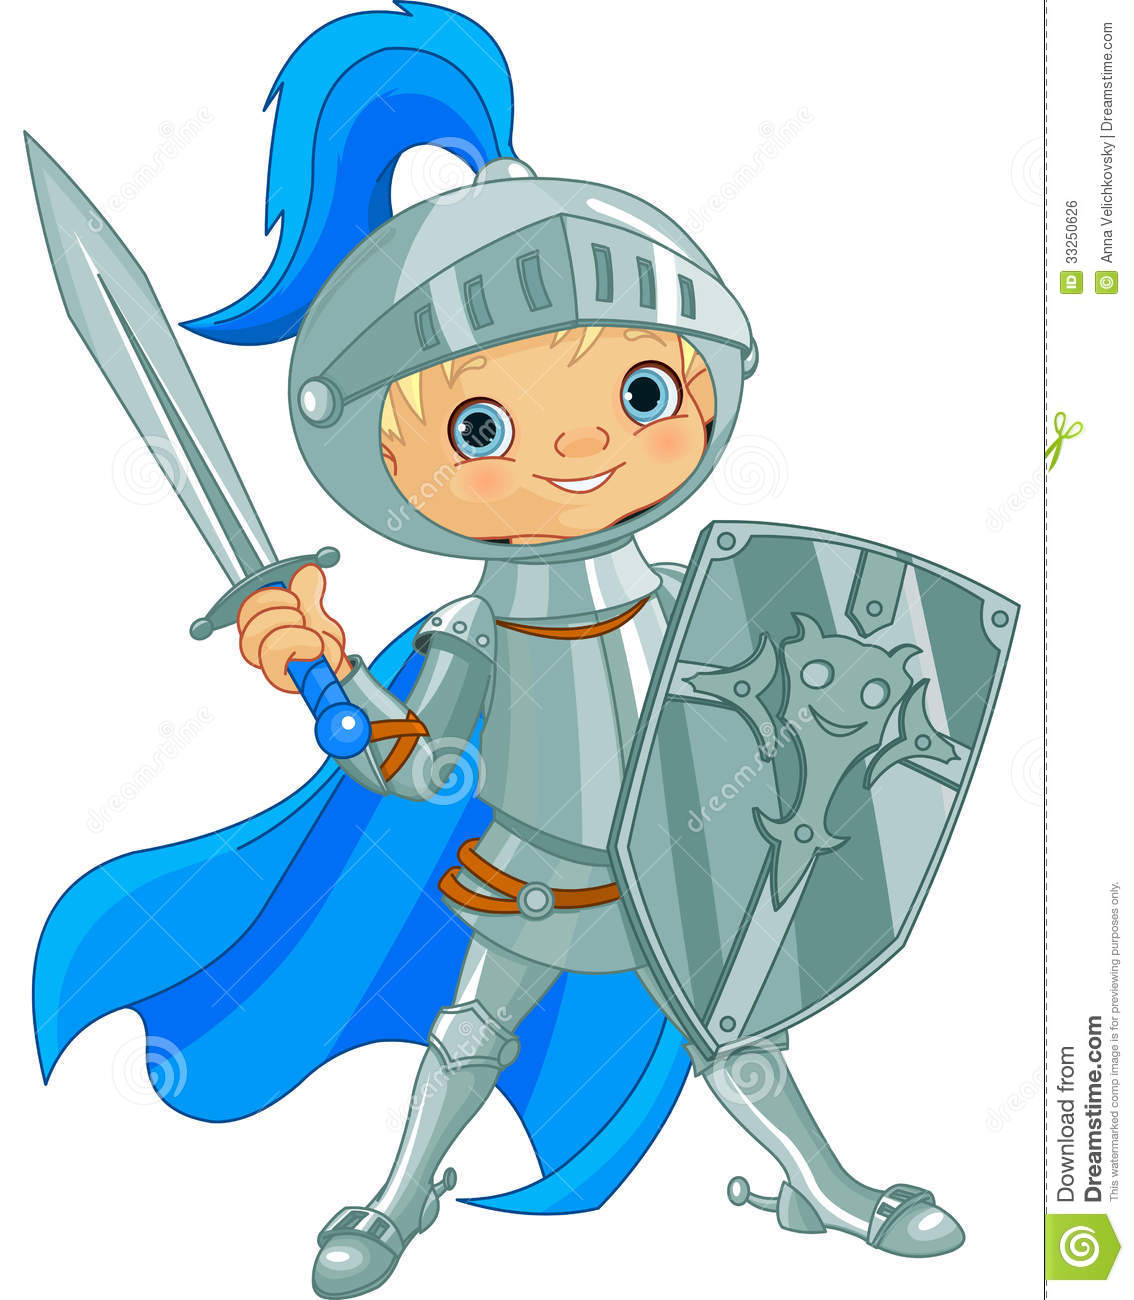 Fighting Brave Knight Royalty Free Stock Image - Image: 33250626